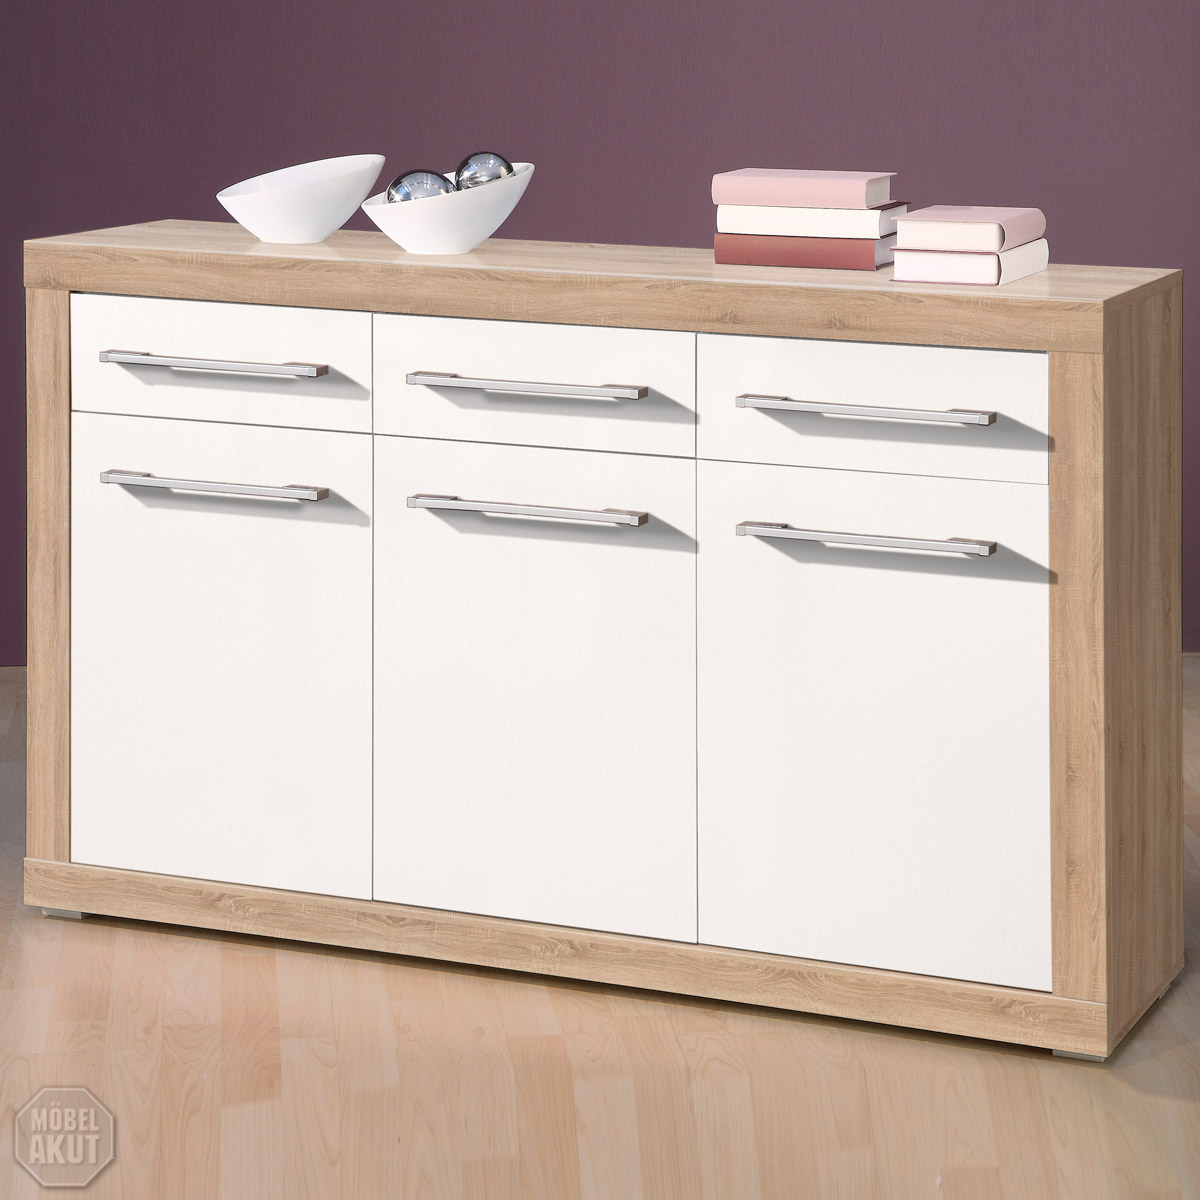 sideboard cabo kommode in sonoma eiche s gerau wei glanz 137x88 cm ebay. Black Bedroom Furniture Sets. Home Design Ideas